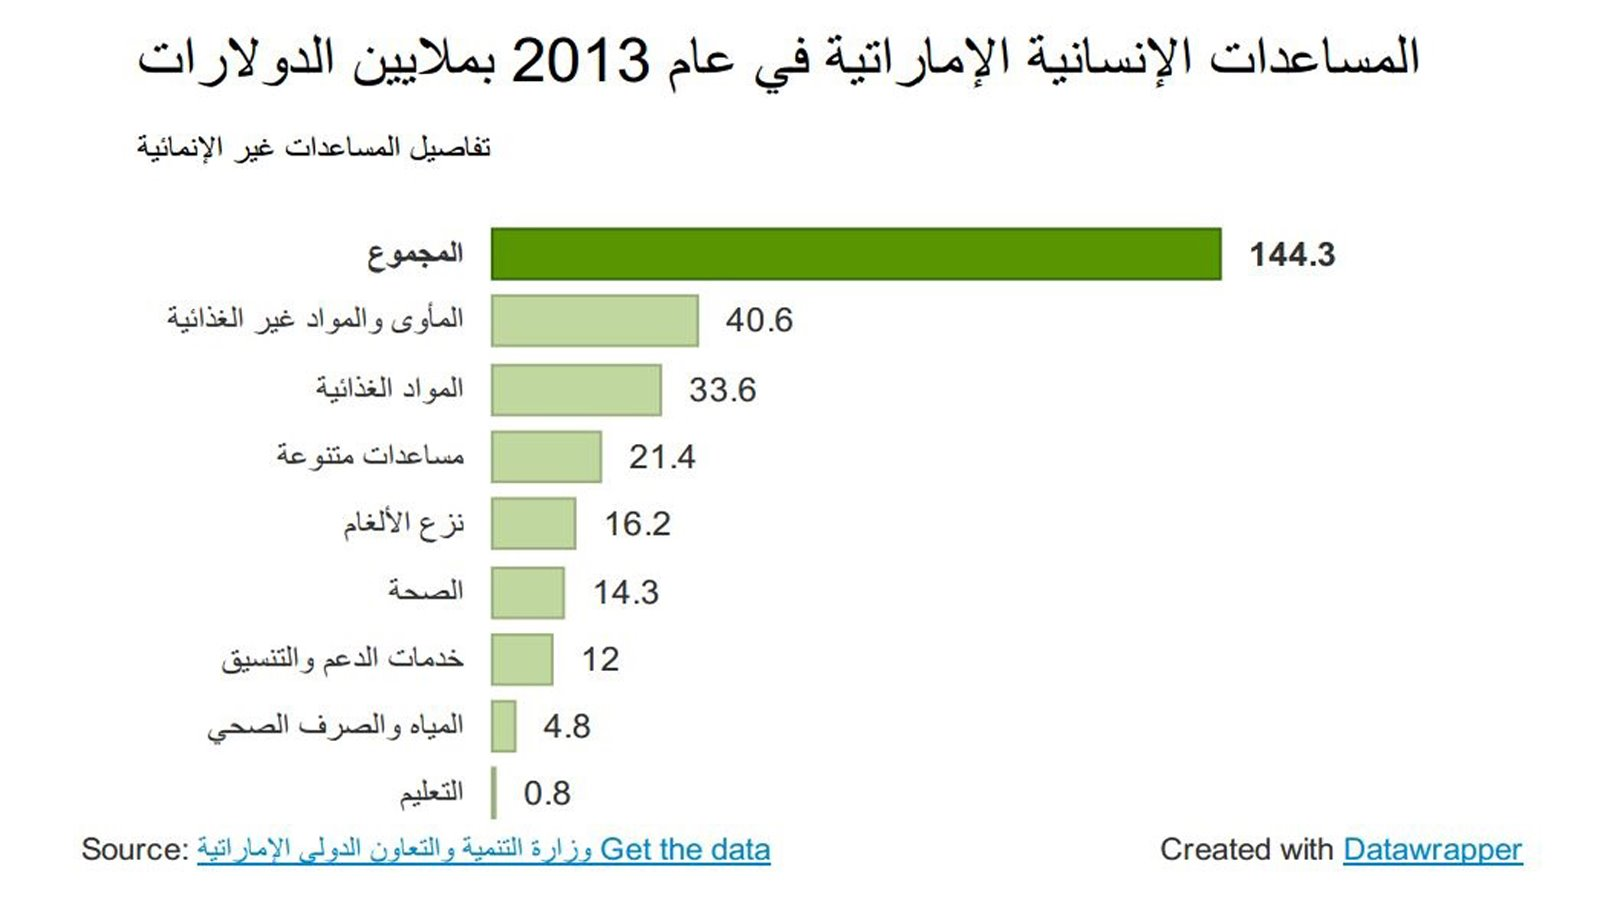 UAE aid statistics 2013 in Arabic